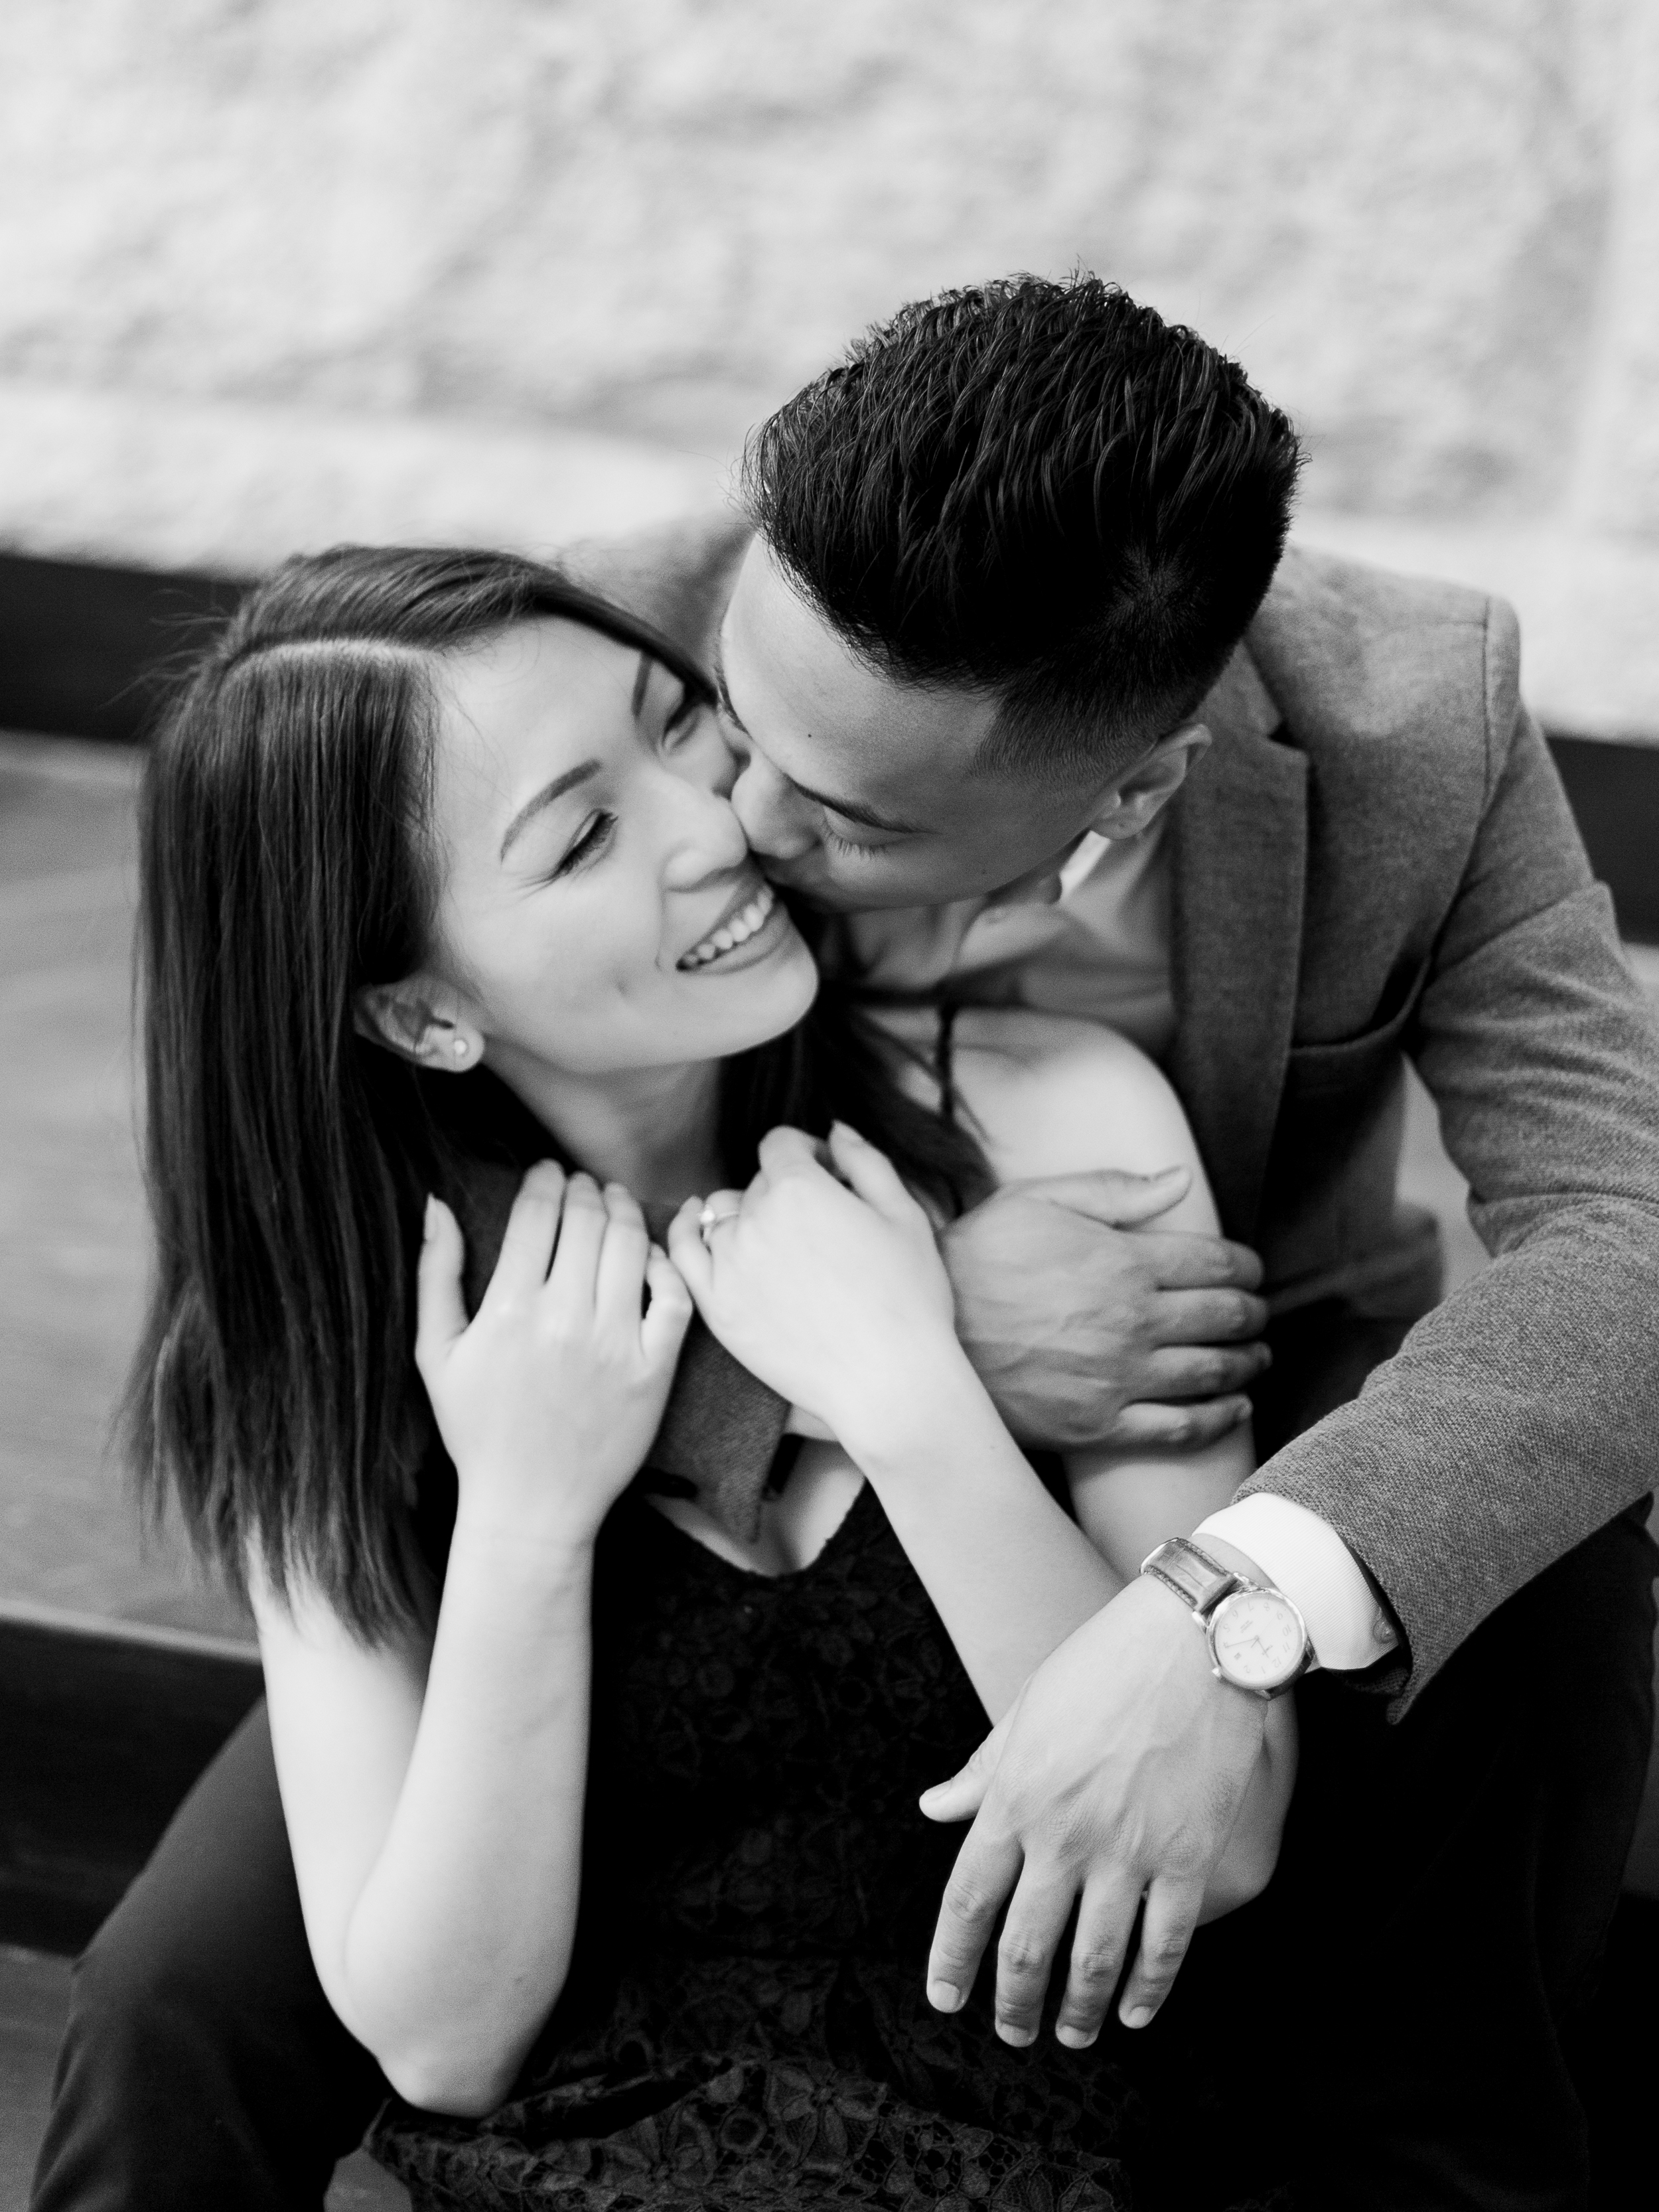 Romantic-Black-And-White-Engagement-Photoshoot-Winnipeg-Manitoba-Keila-Marie-Photography